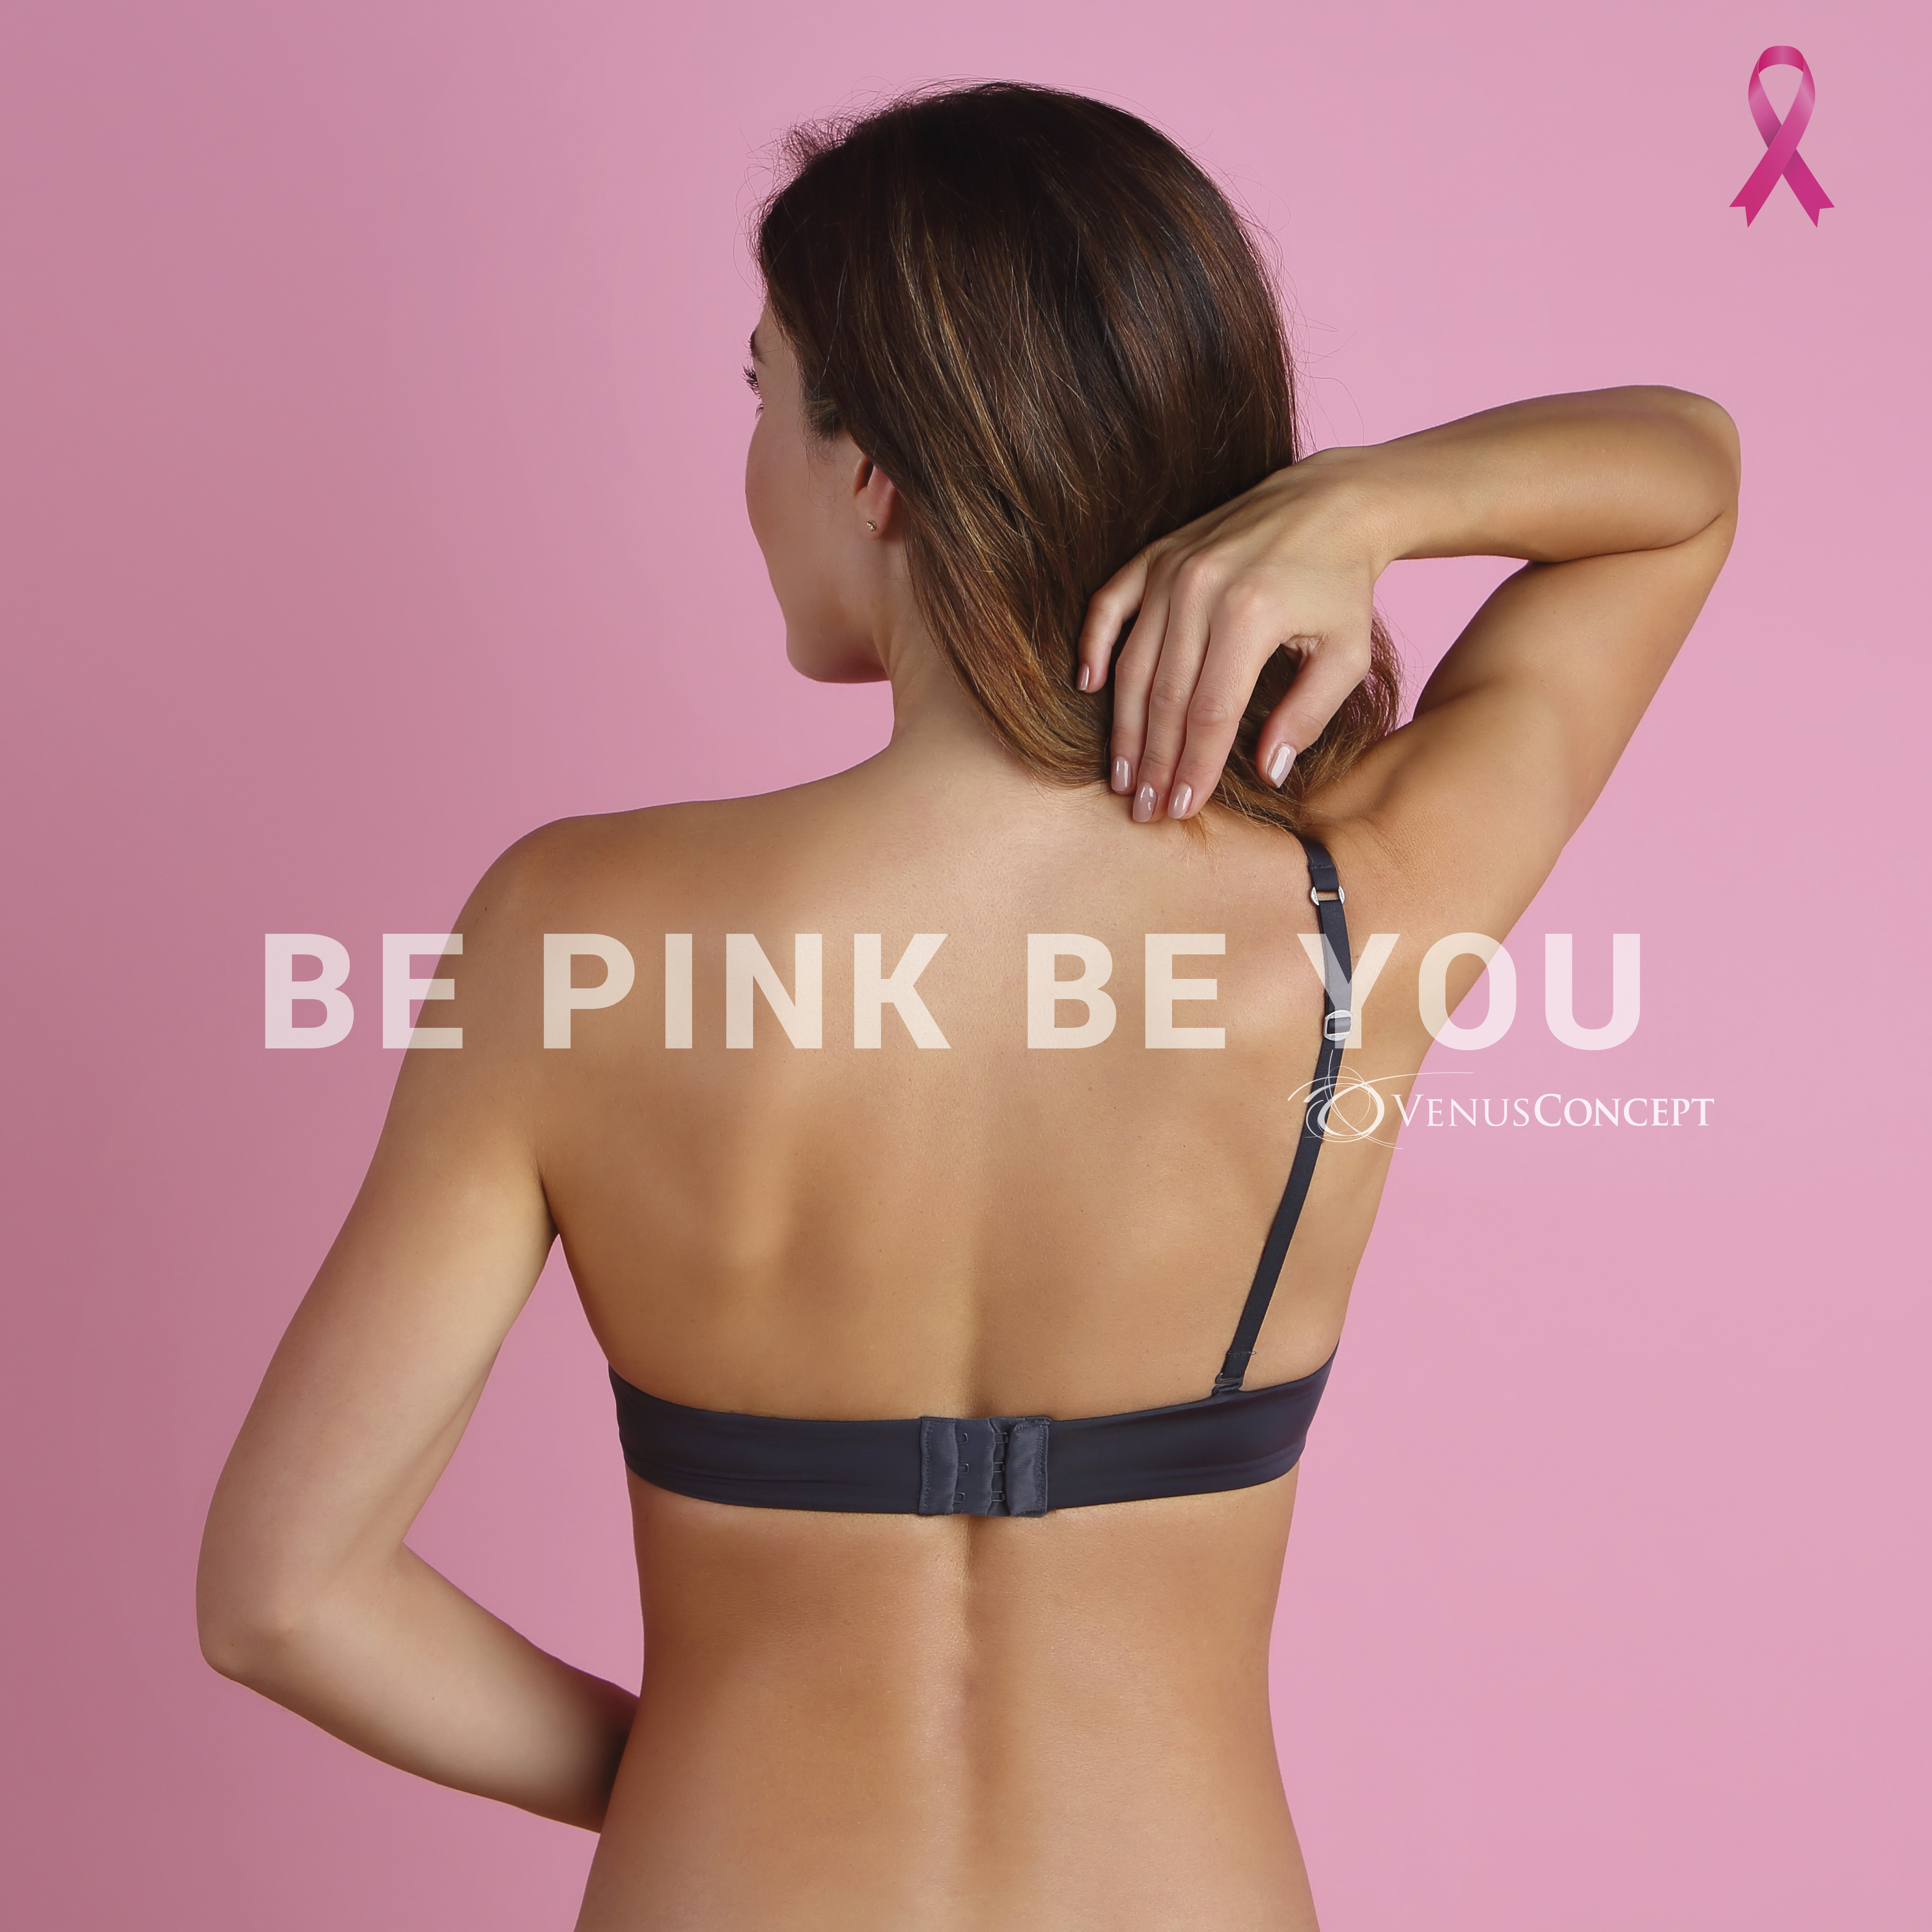 BE PINK BE YOU